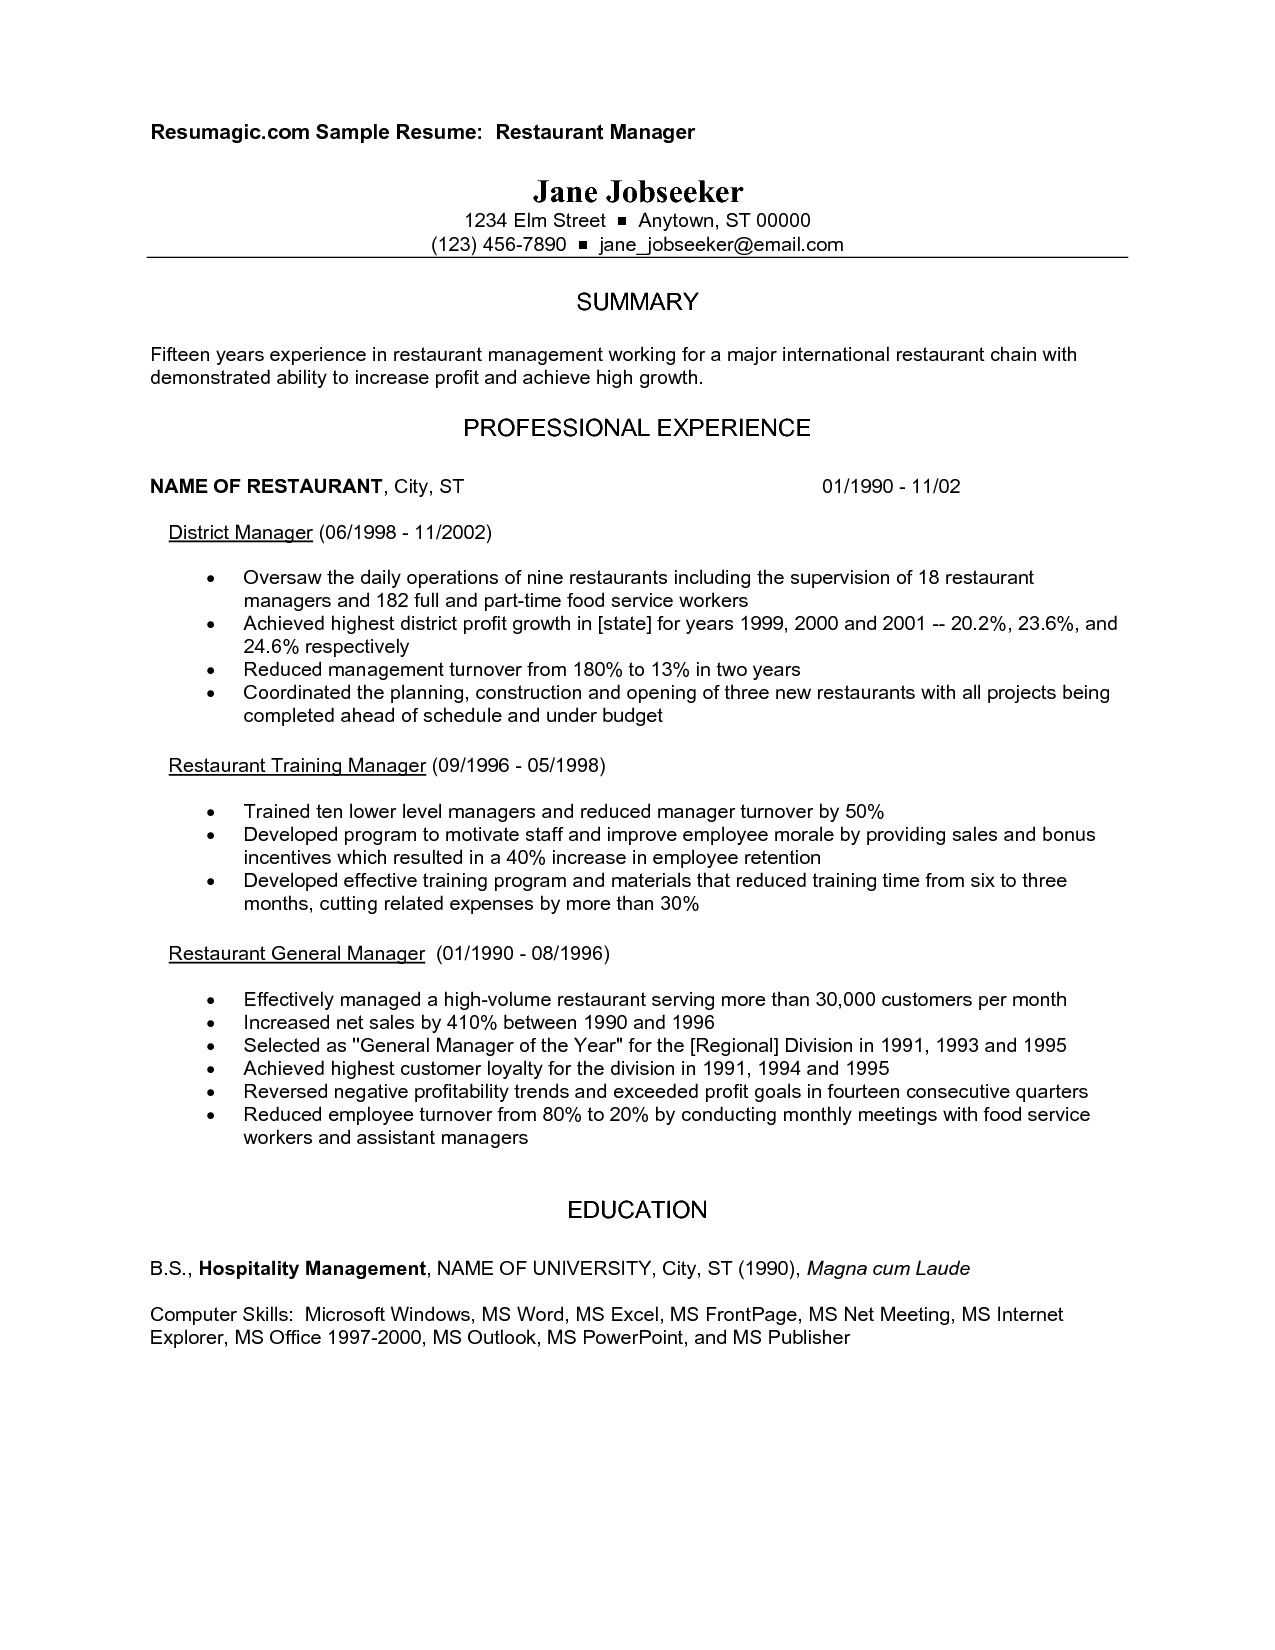 Restaurant Manager Resume Example Http Www Resumecareer Info